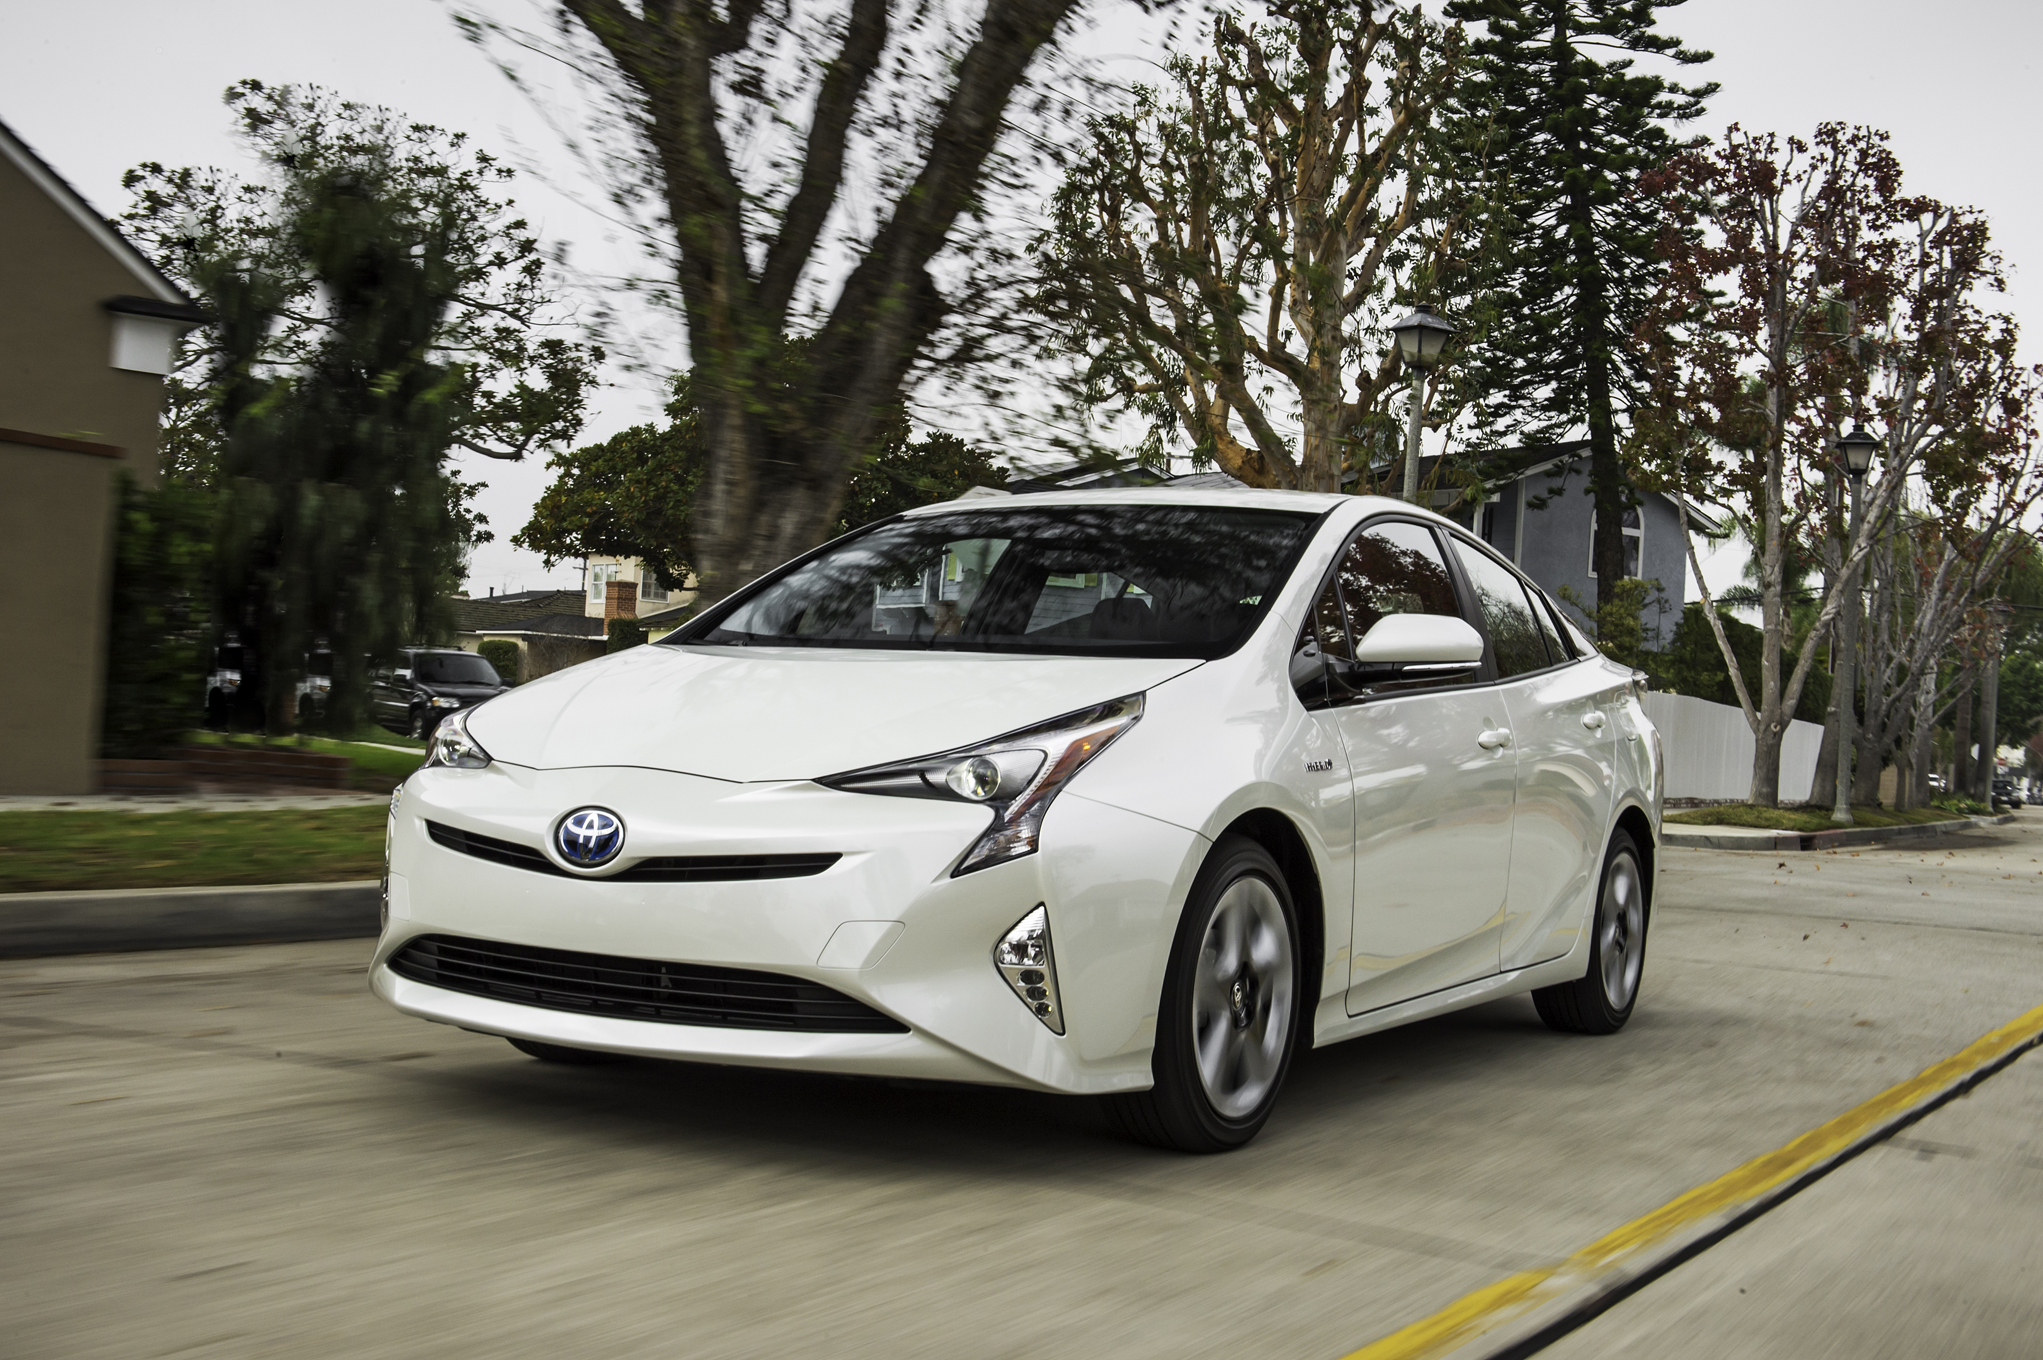 2016 toyota prius photos informations articles. Black Bedroom Furniture Sets. Home Design Ideas